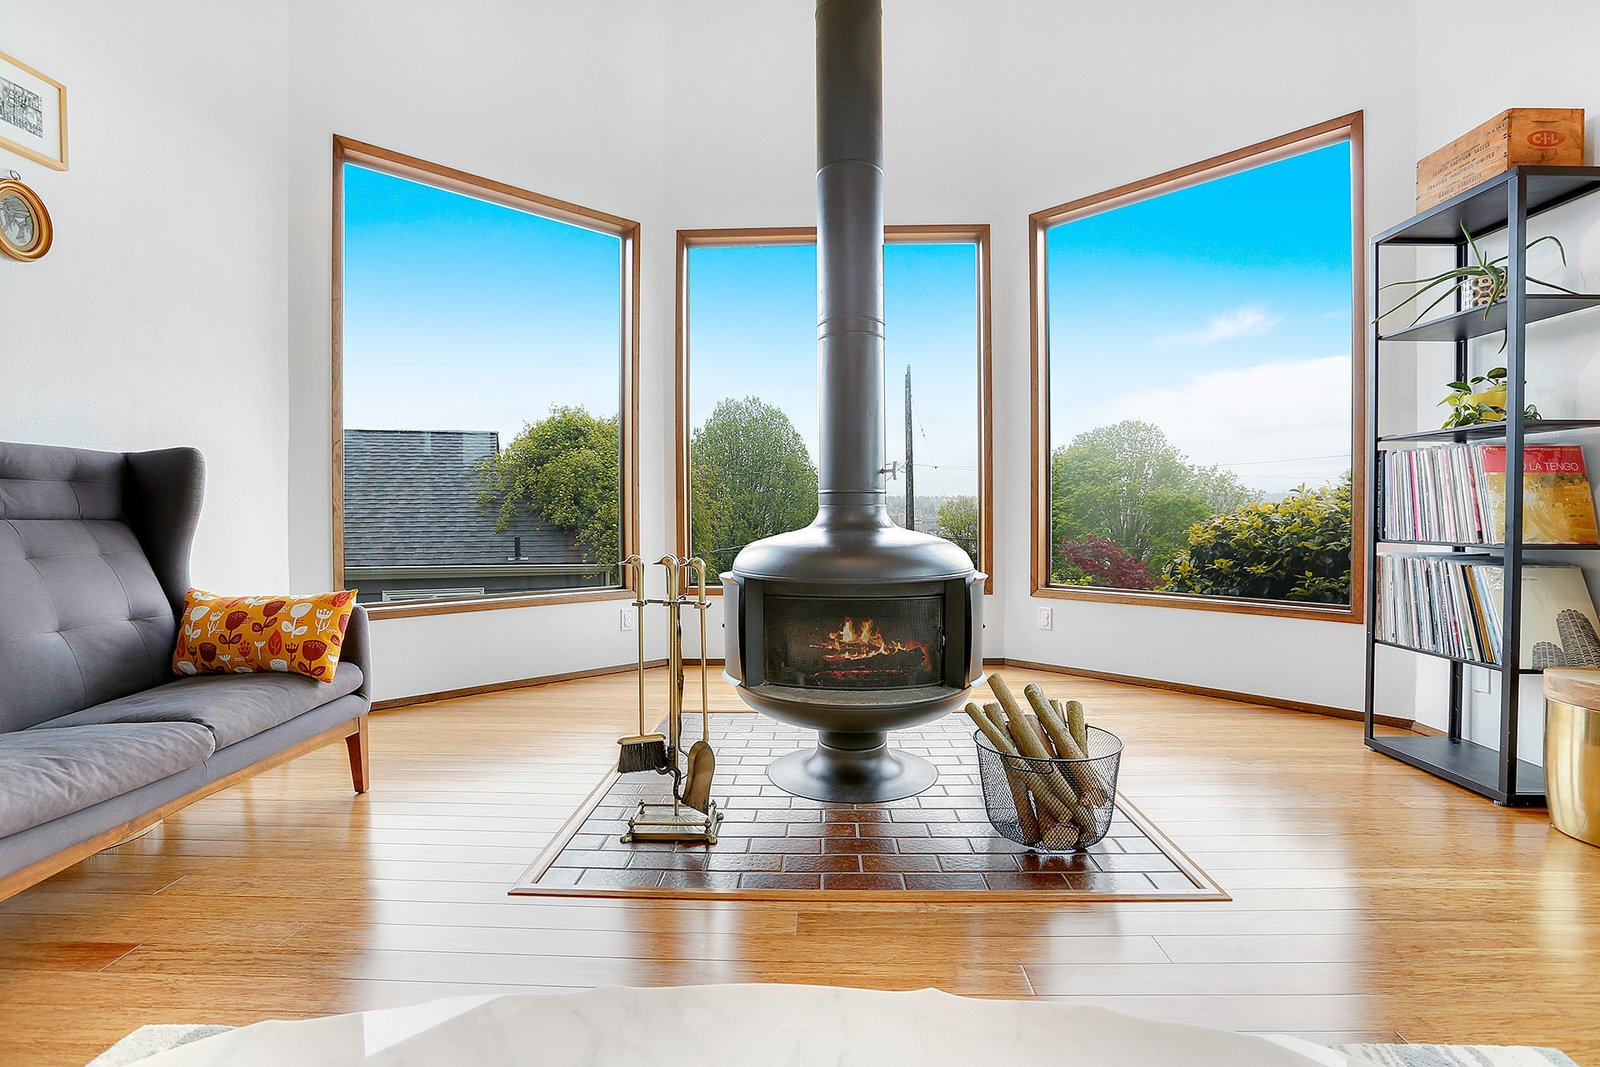 Original drum fireplace and views of shipping canals.  The Monolith